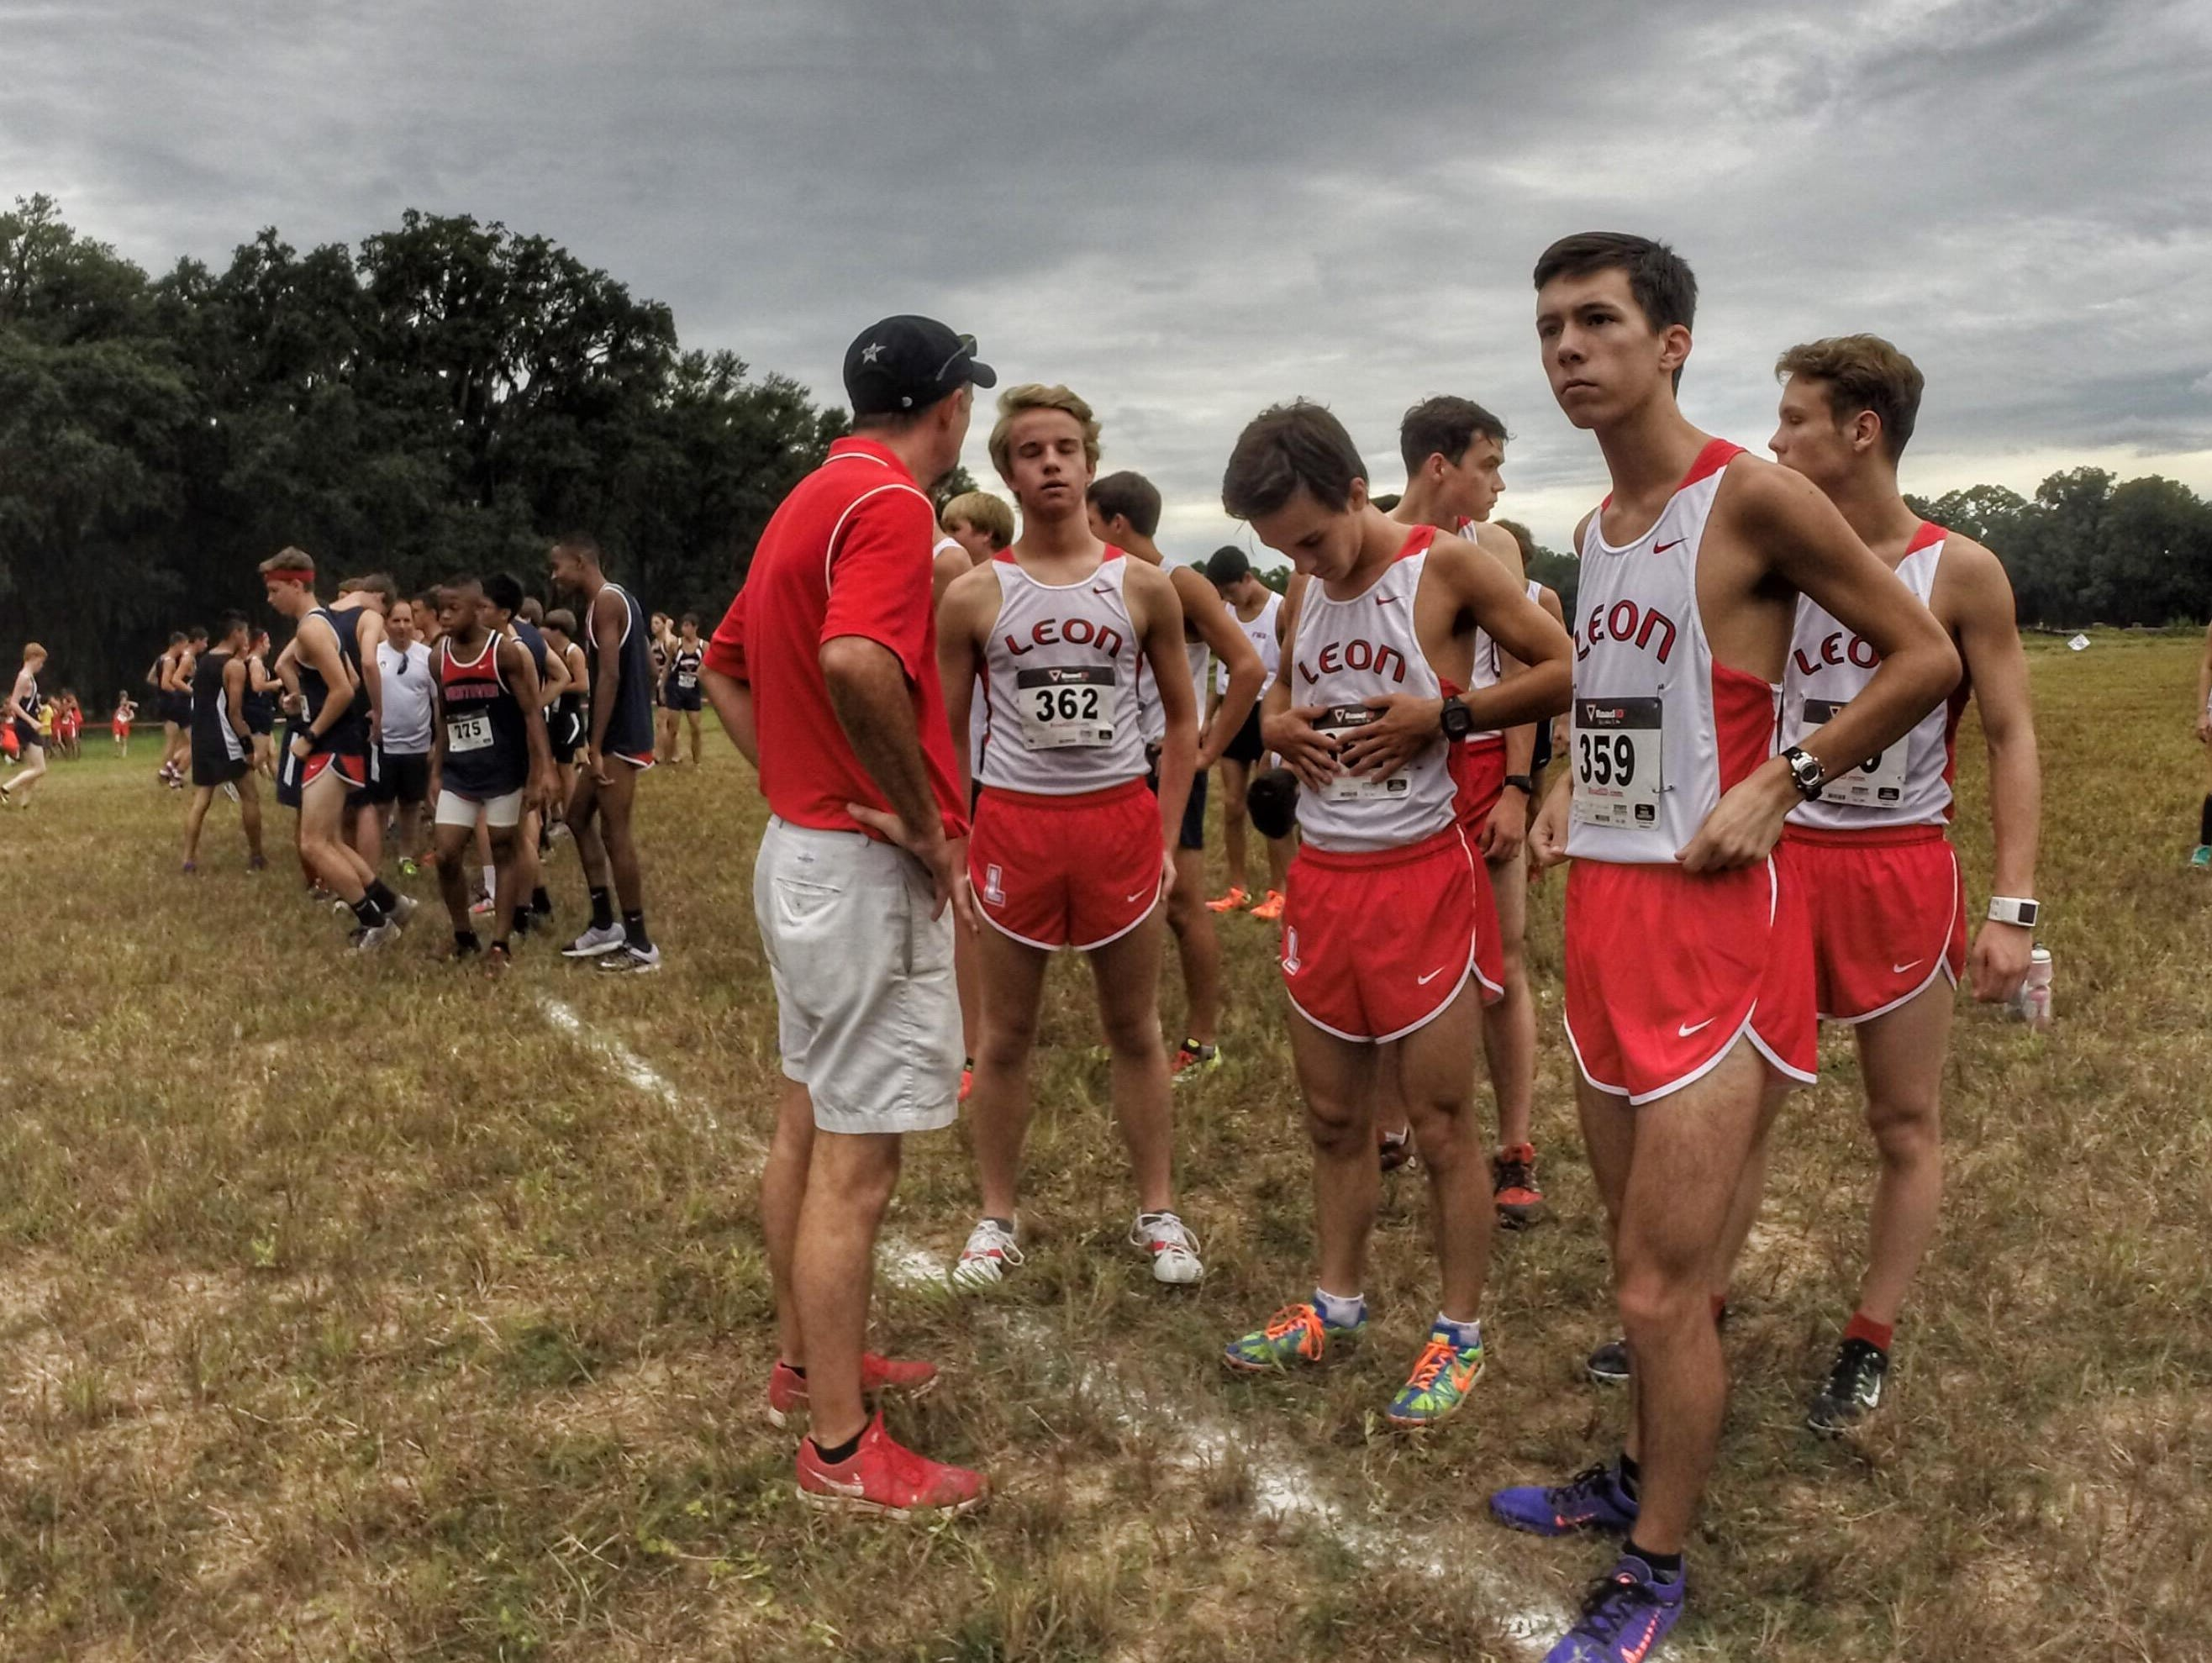 Leon coach Andrew Wills talks to his mostly new cross country team prior to last Saturday's Cougar XC Challenge at Elinor Klapp-Phipps Park.